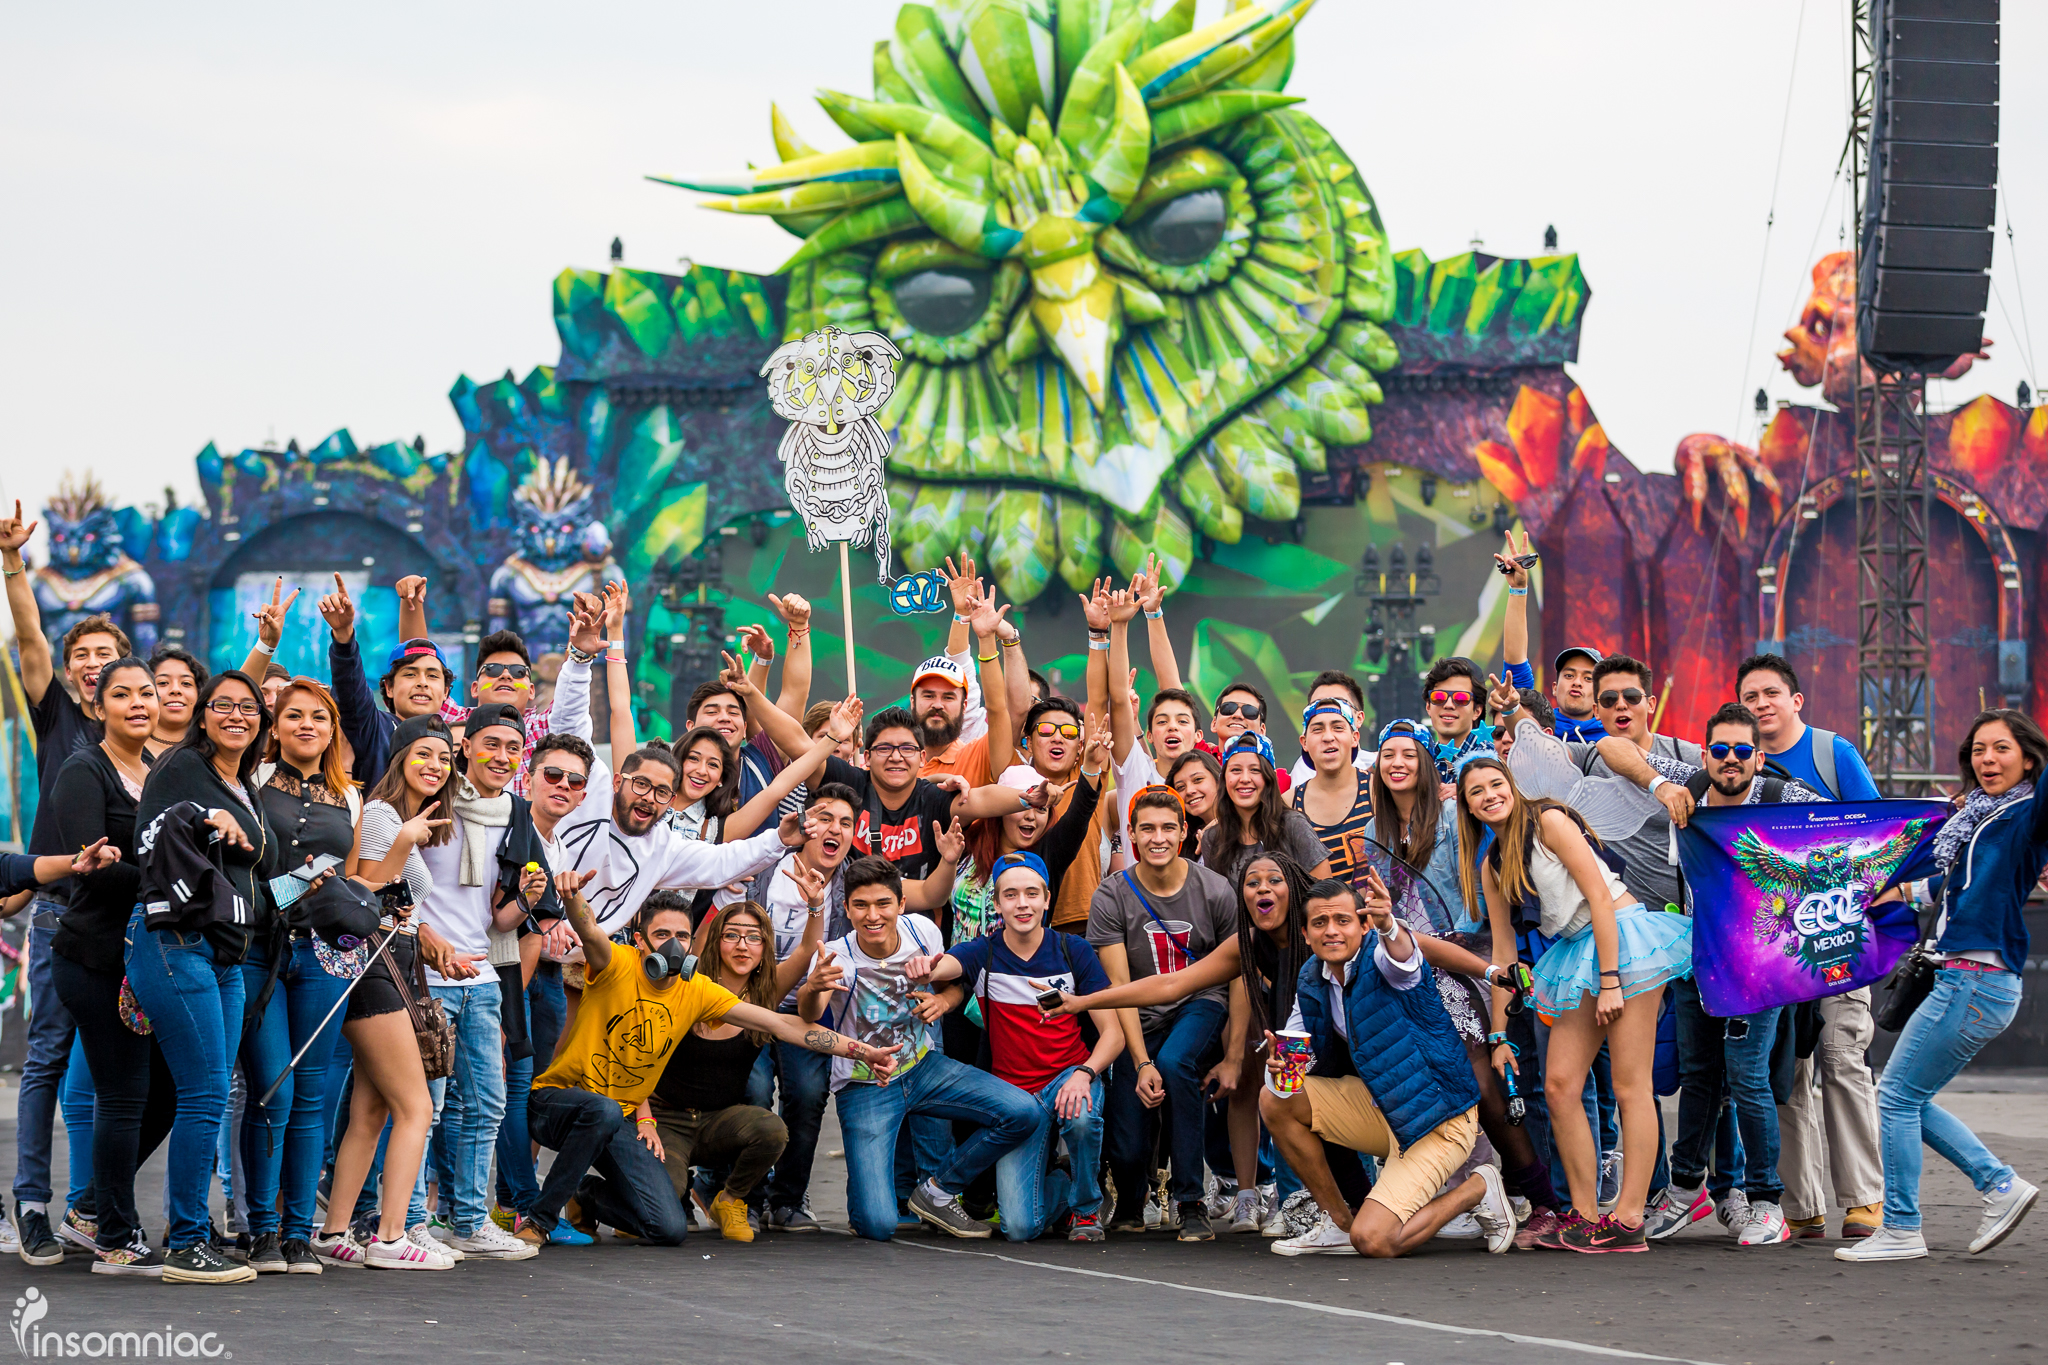 edcmx_2016_iwally_alivecoverage-5.jpg